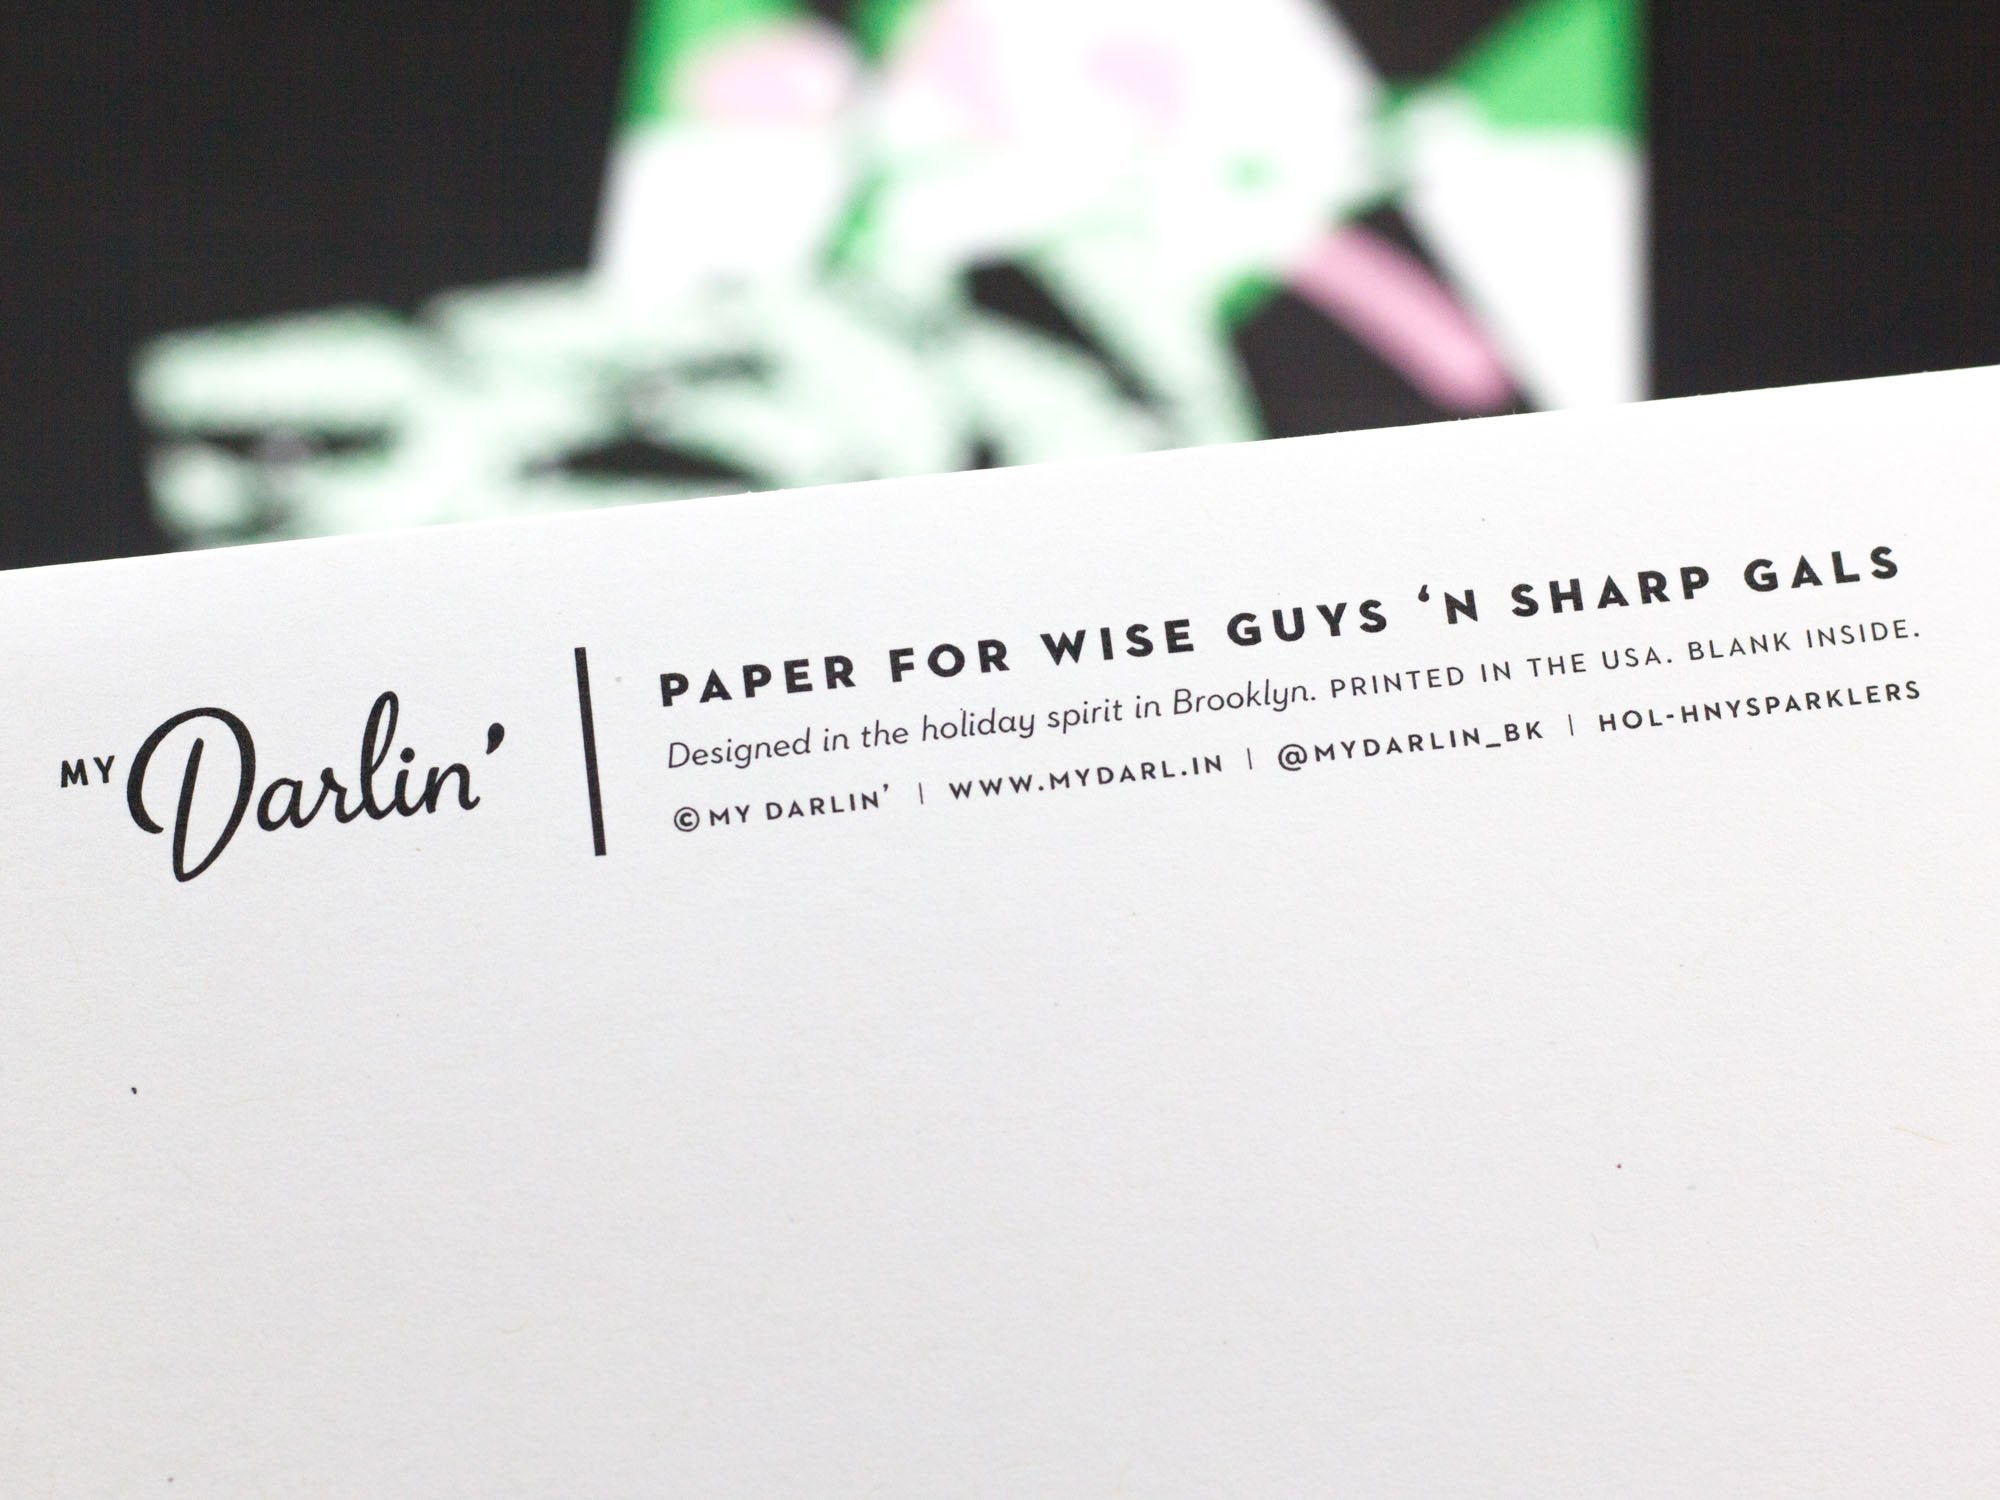 Secret messages on the back of My Darlin' holiday cards. Designed in the holiday spirit by @mydarlin_bk